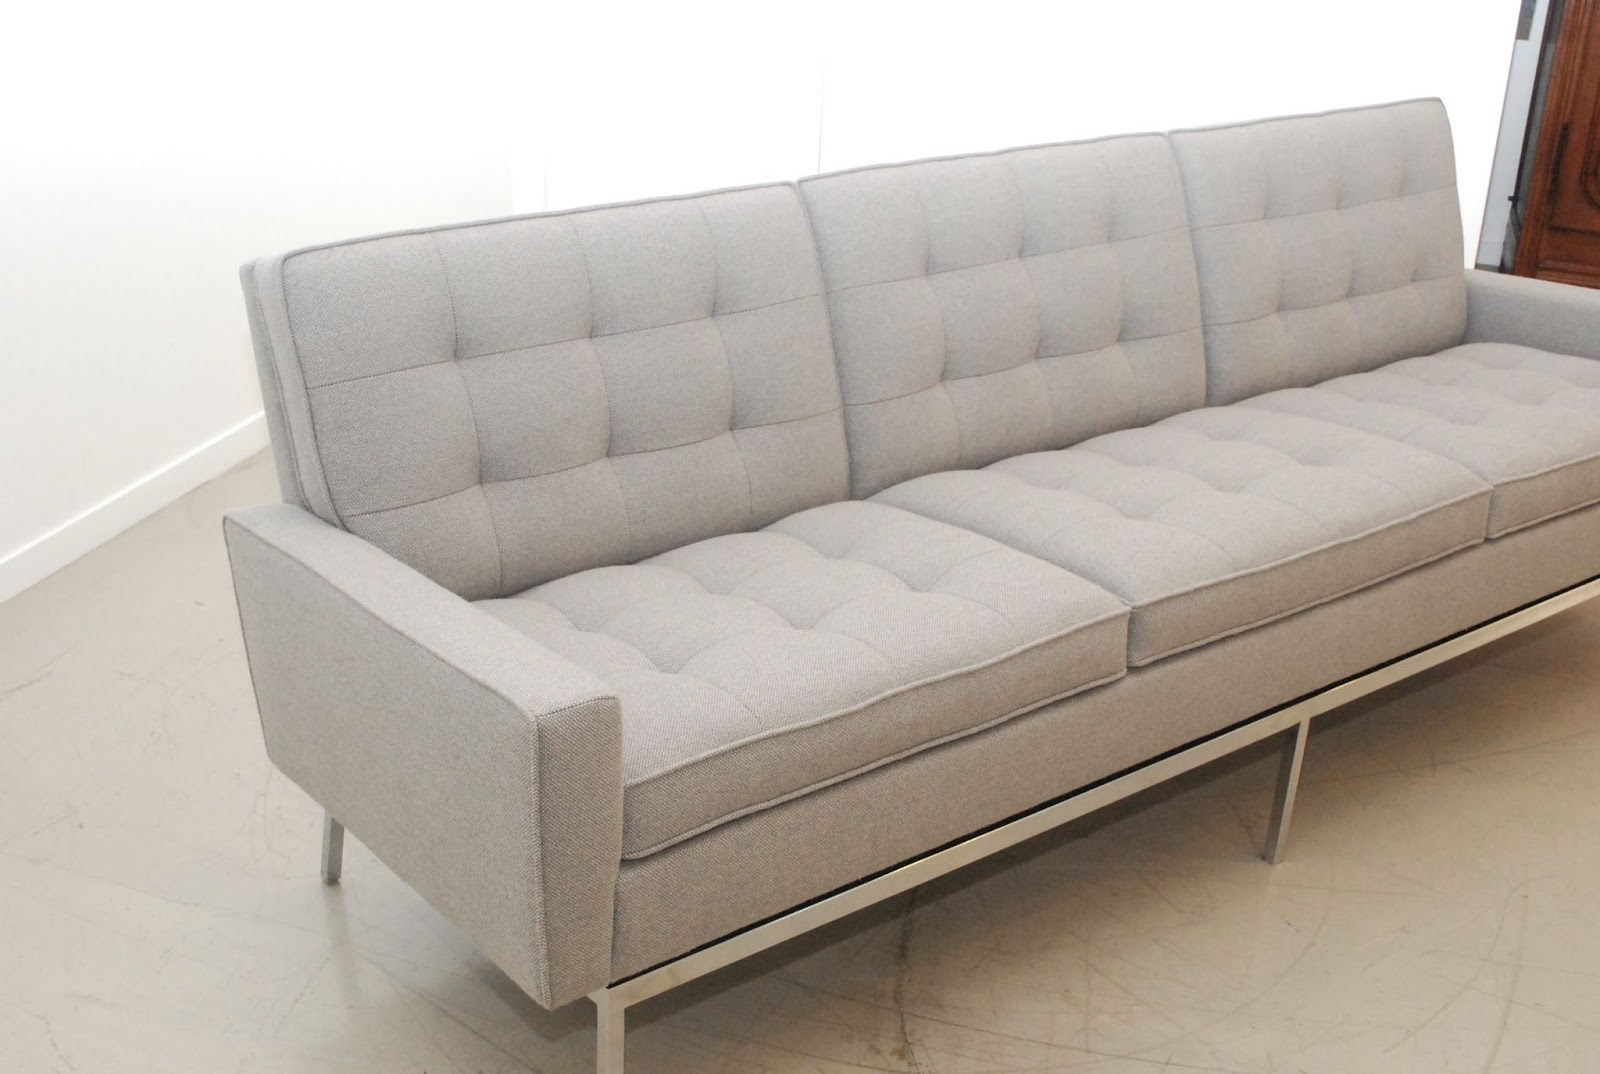 Knoll Couch Classic Design Before And After Vintage Florence Knoll Sofa